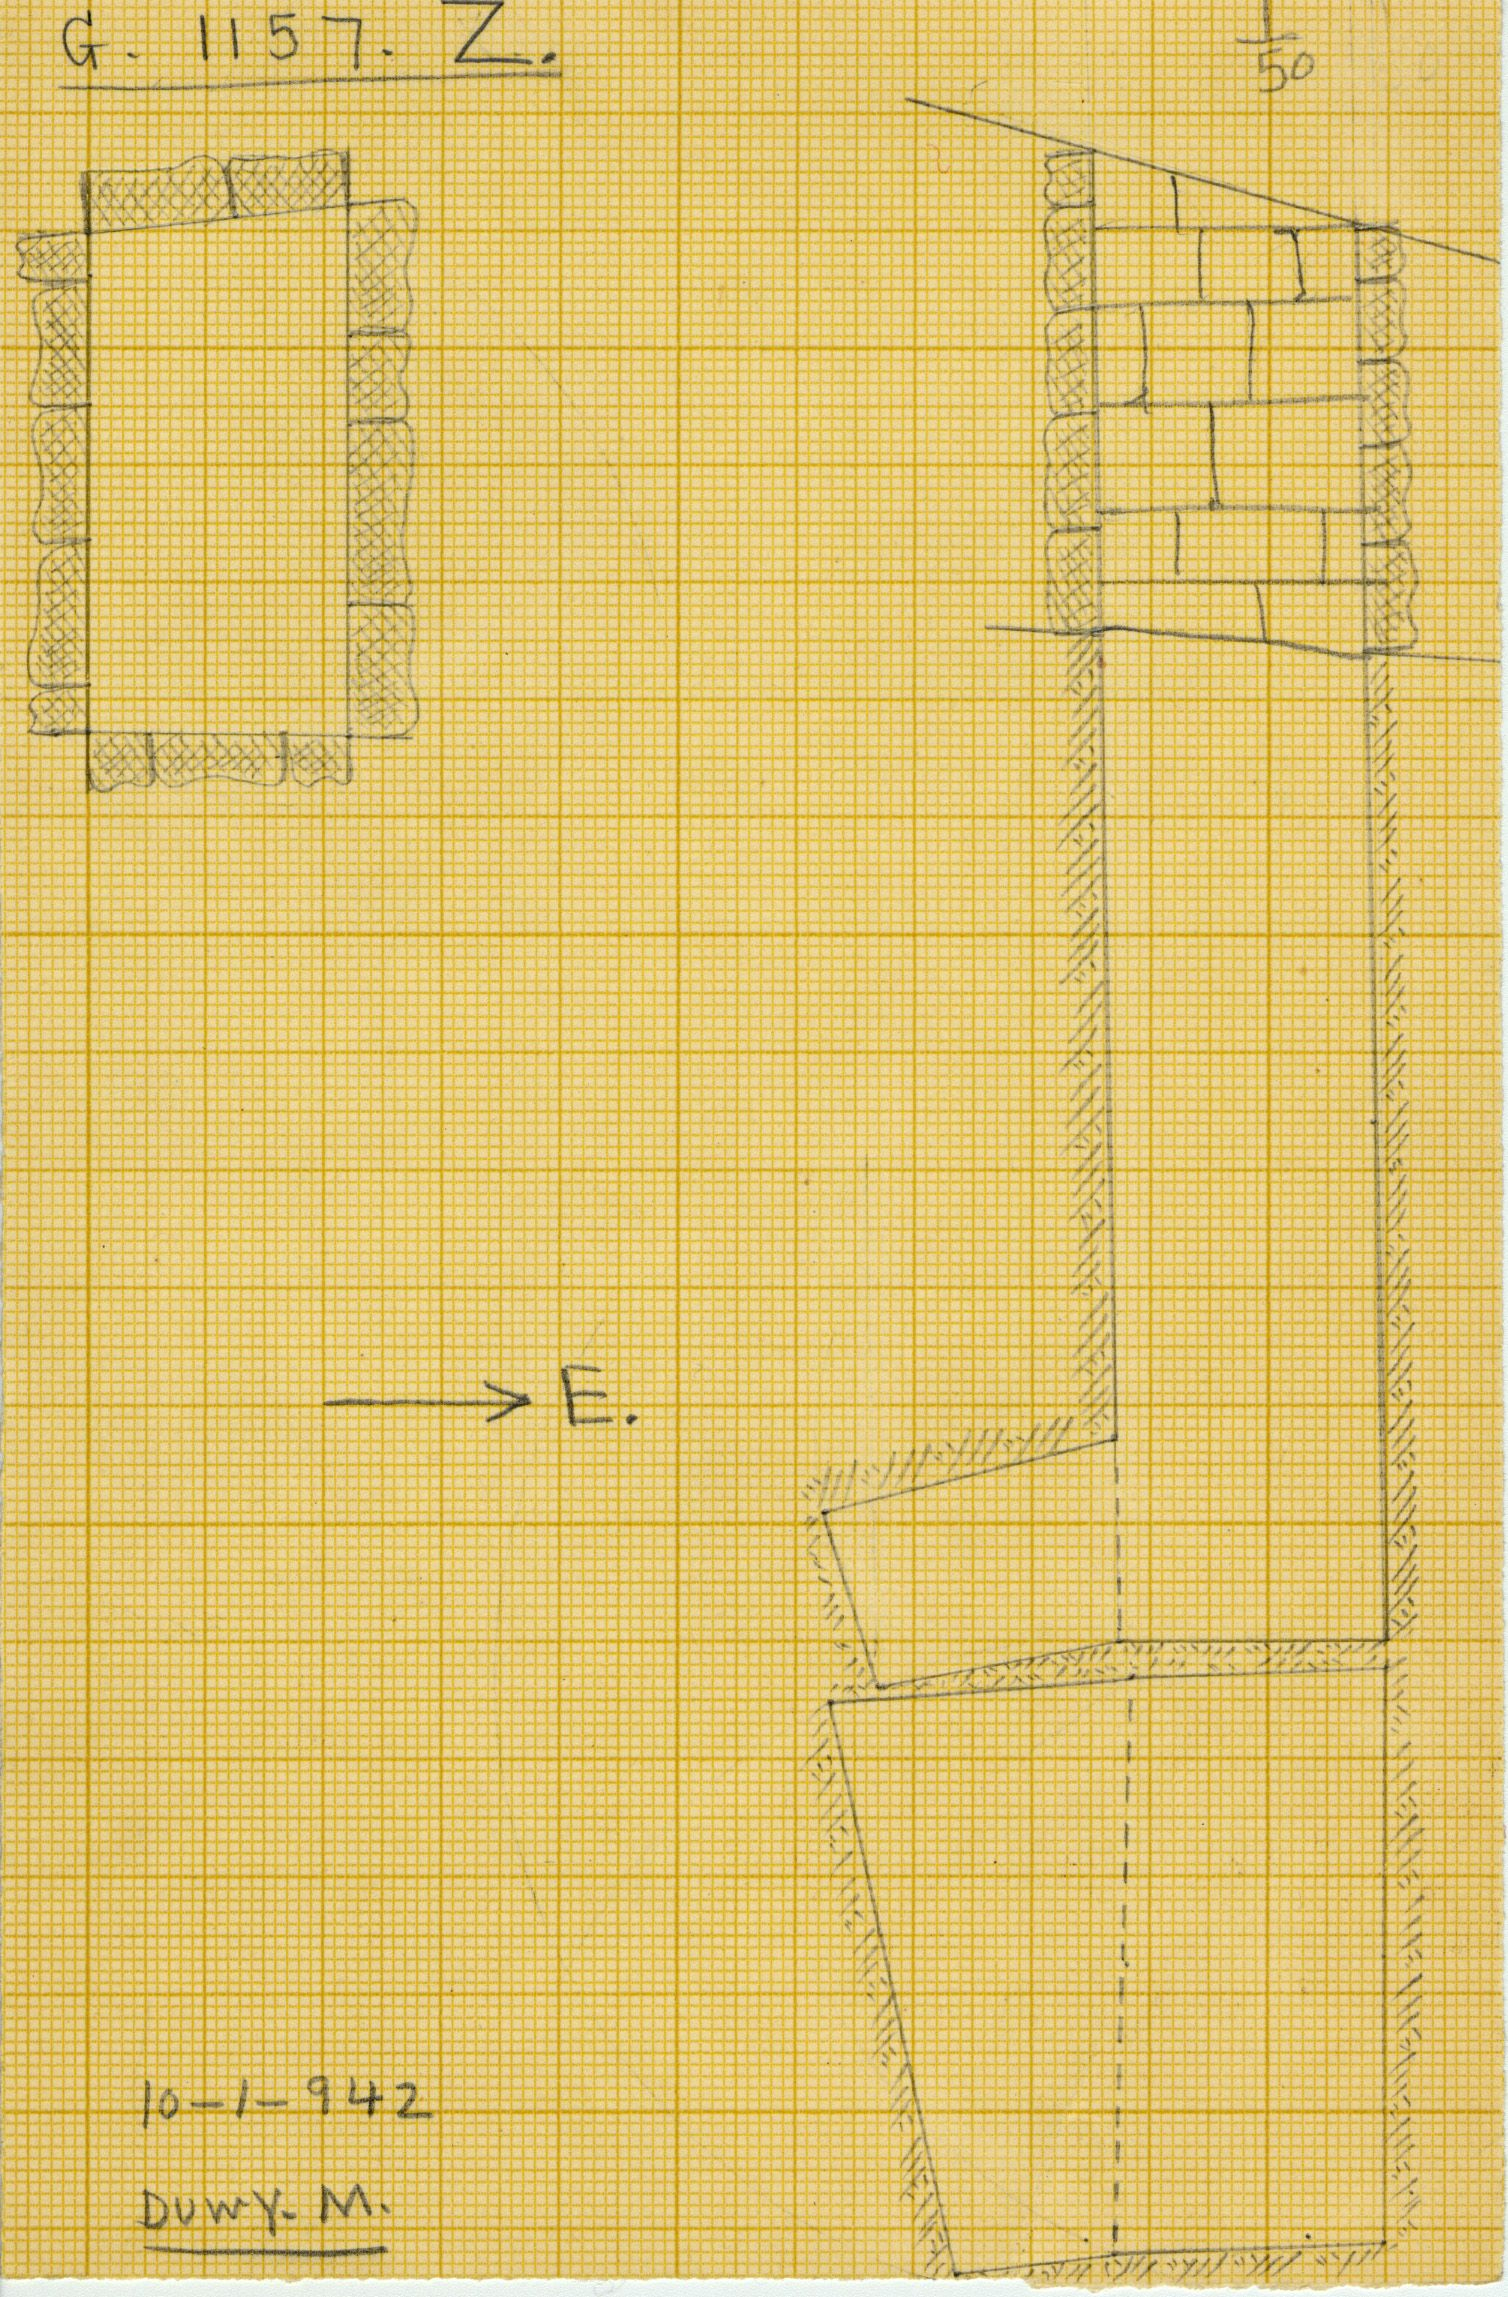 Maps and plans: G 1157, Shaft Z